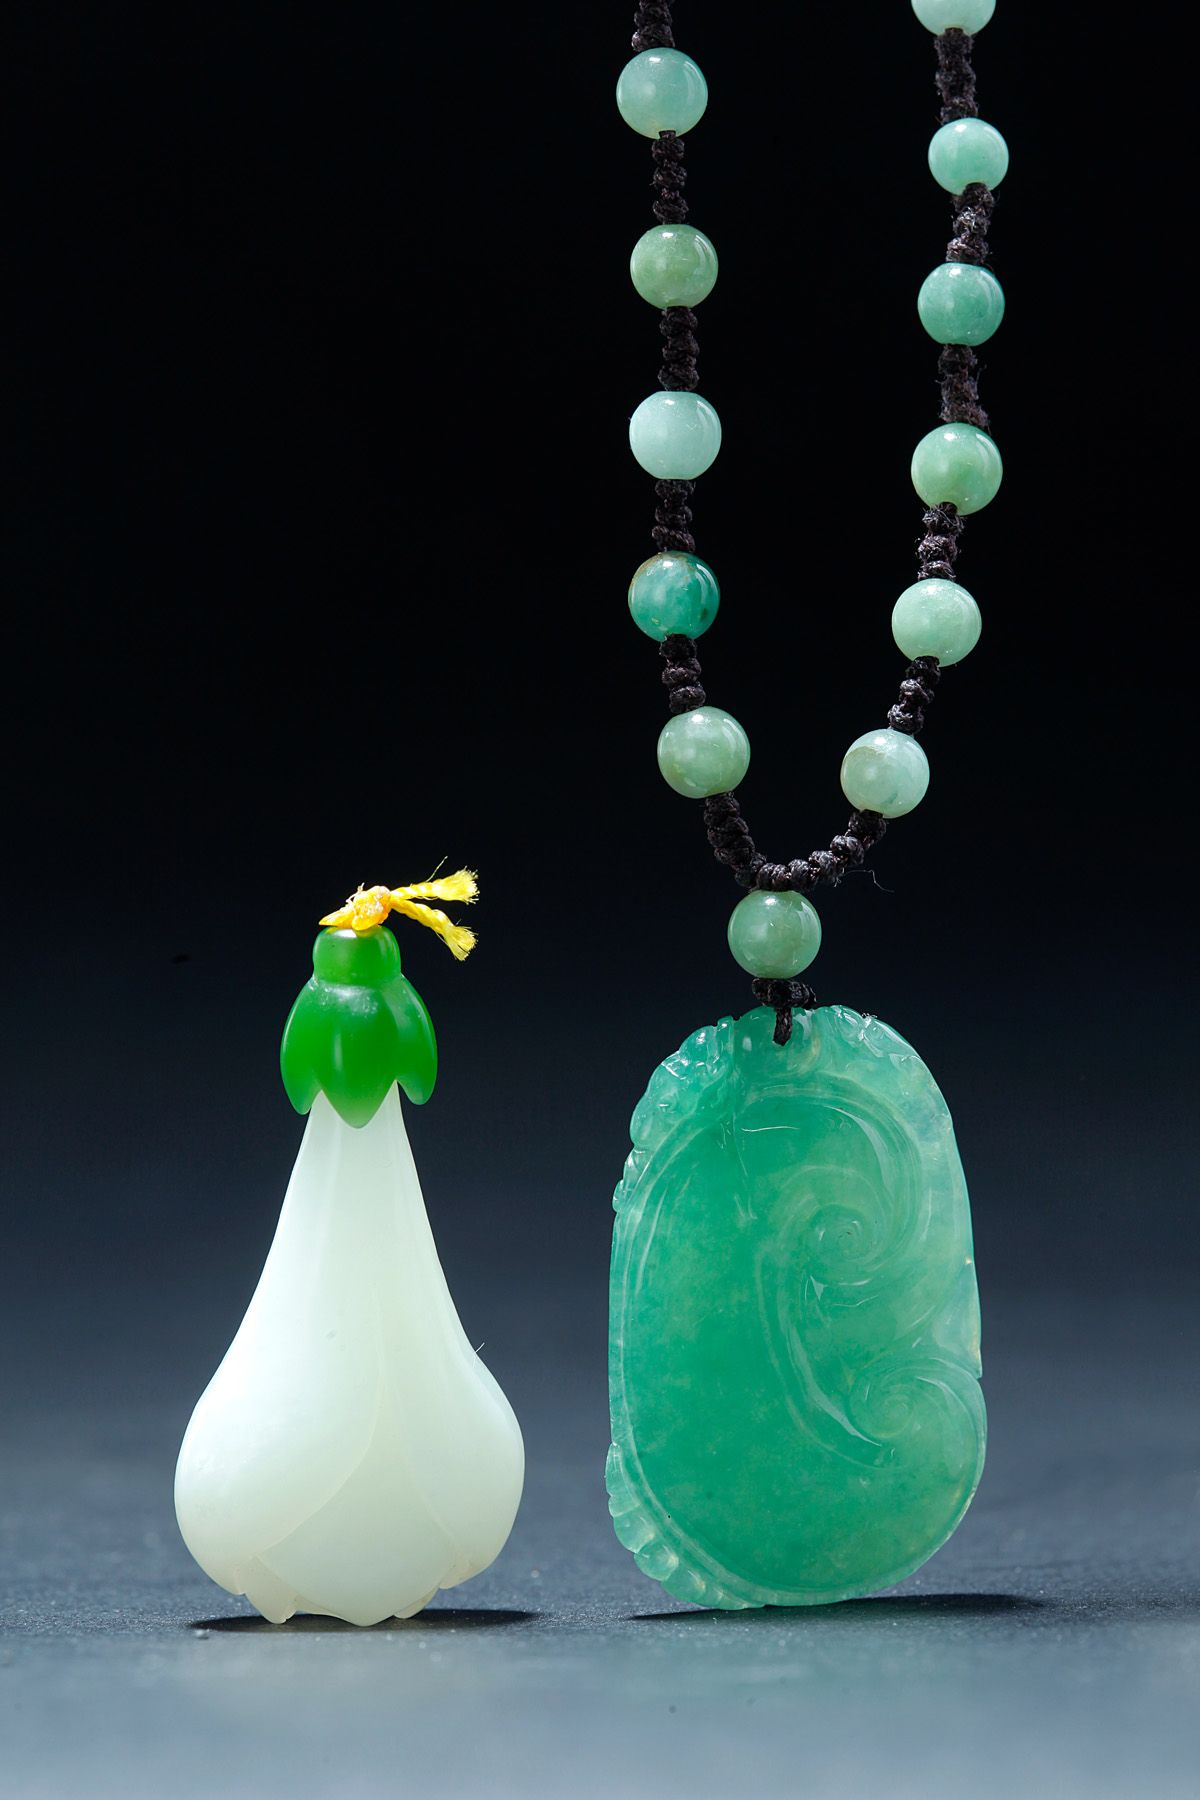 """TWO CHINESE JADE AND JADEITE PENDANTS.  Nineteenth-20th century. Green ice jadeite and white jade. Necklace with small beads and a carved LinZhi ( RuYi) pendant, 1.5""""h. and a finely carved white magnolia. 1.5""""h.  Estimate $ 2,000-3,000 garths.com"""